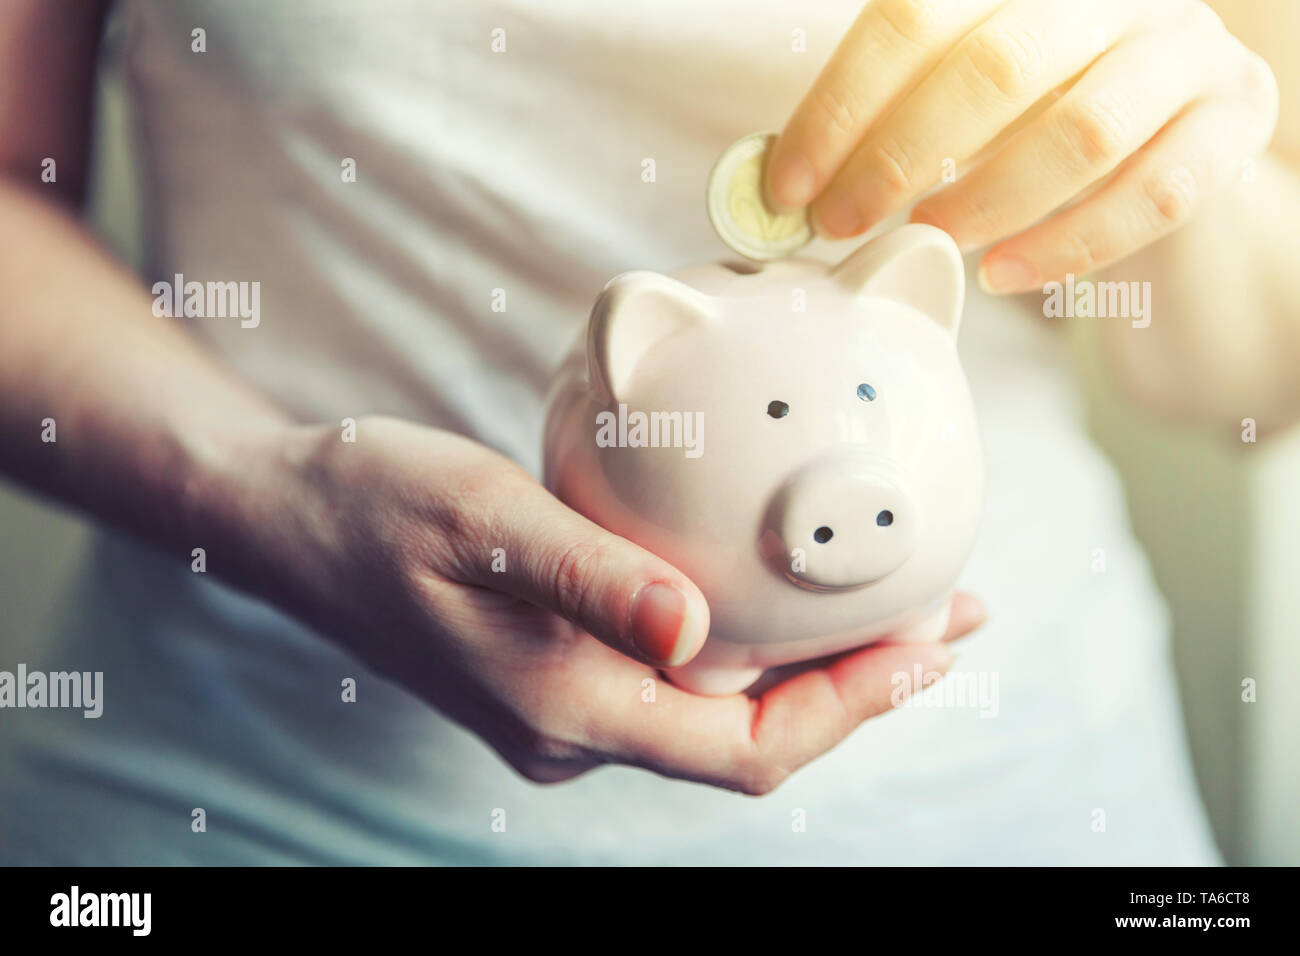 Female woman hands holding pink piggy bank and putting money Euro coin. Saving investment budget business wealth retirement financial money banking co - Stock Image